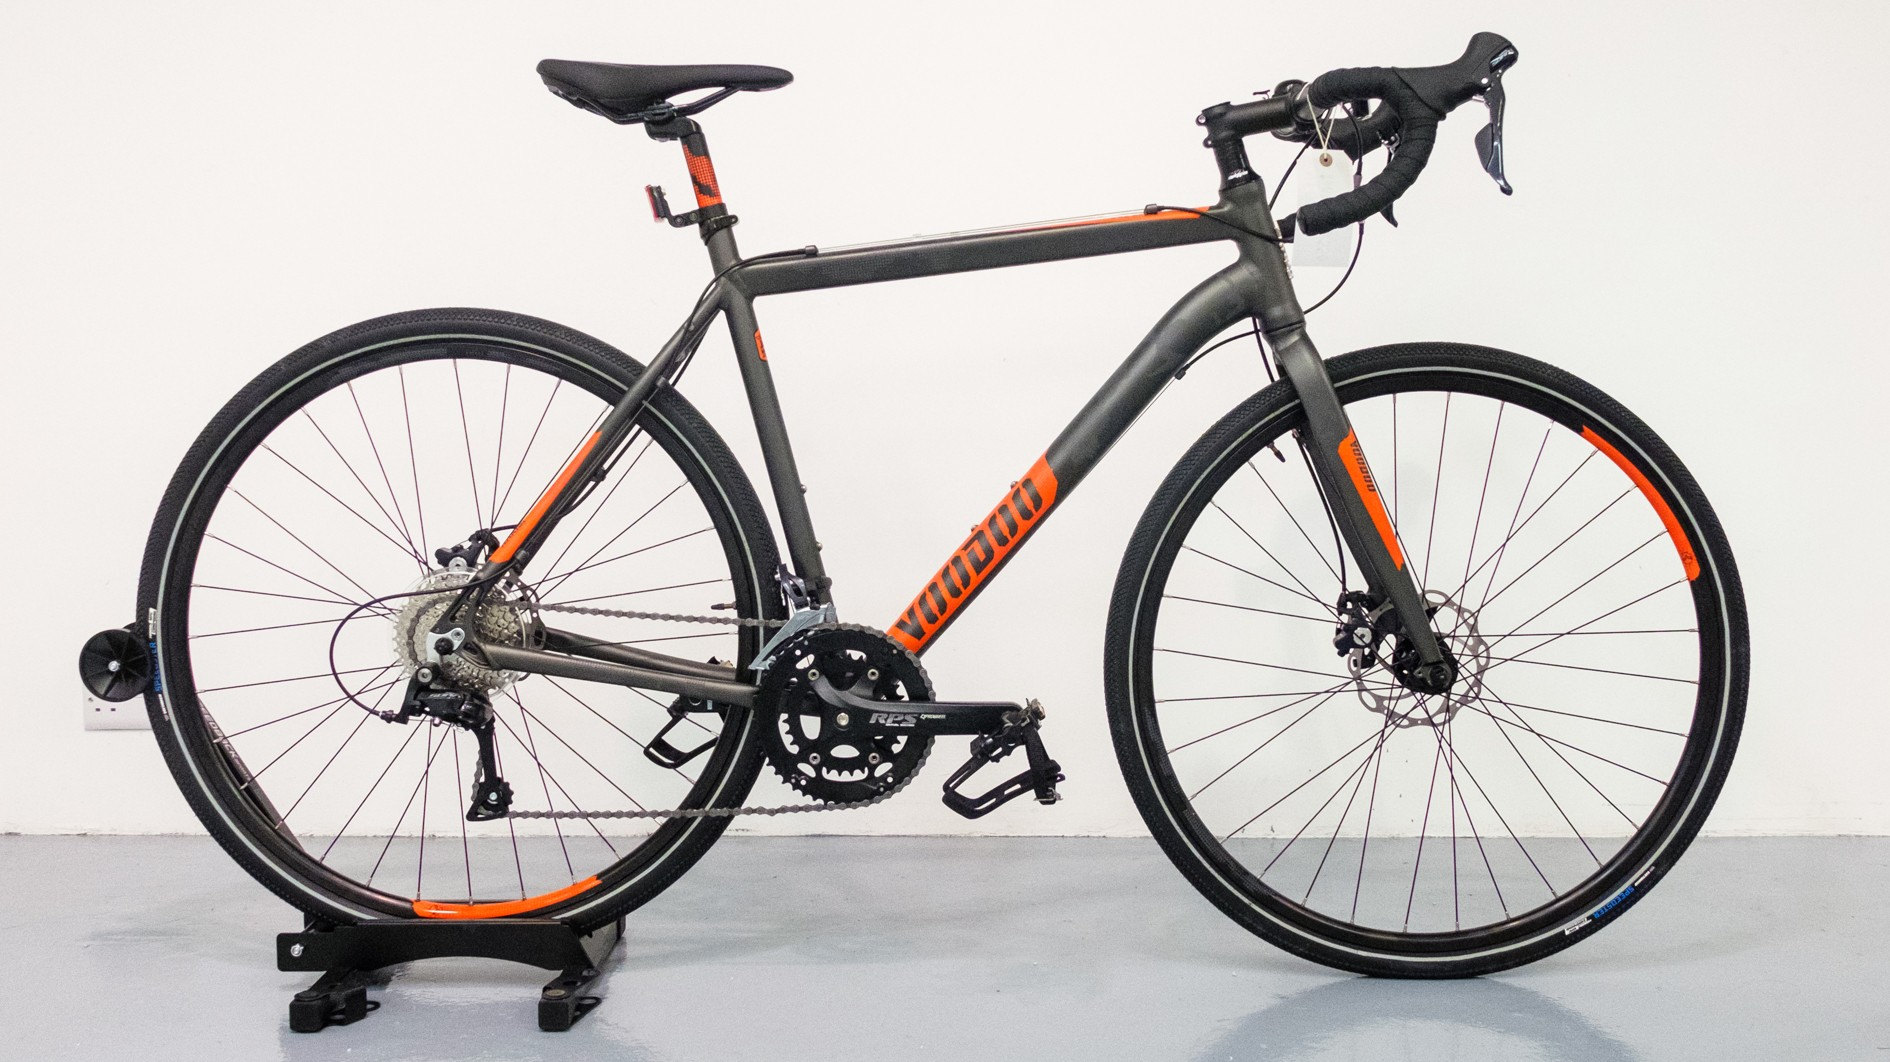 The Nikasi gravel bike could be a great entry-level option